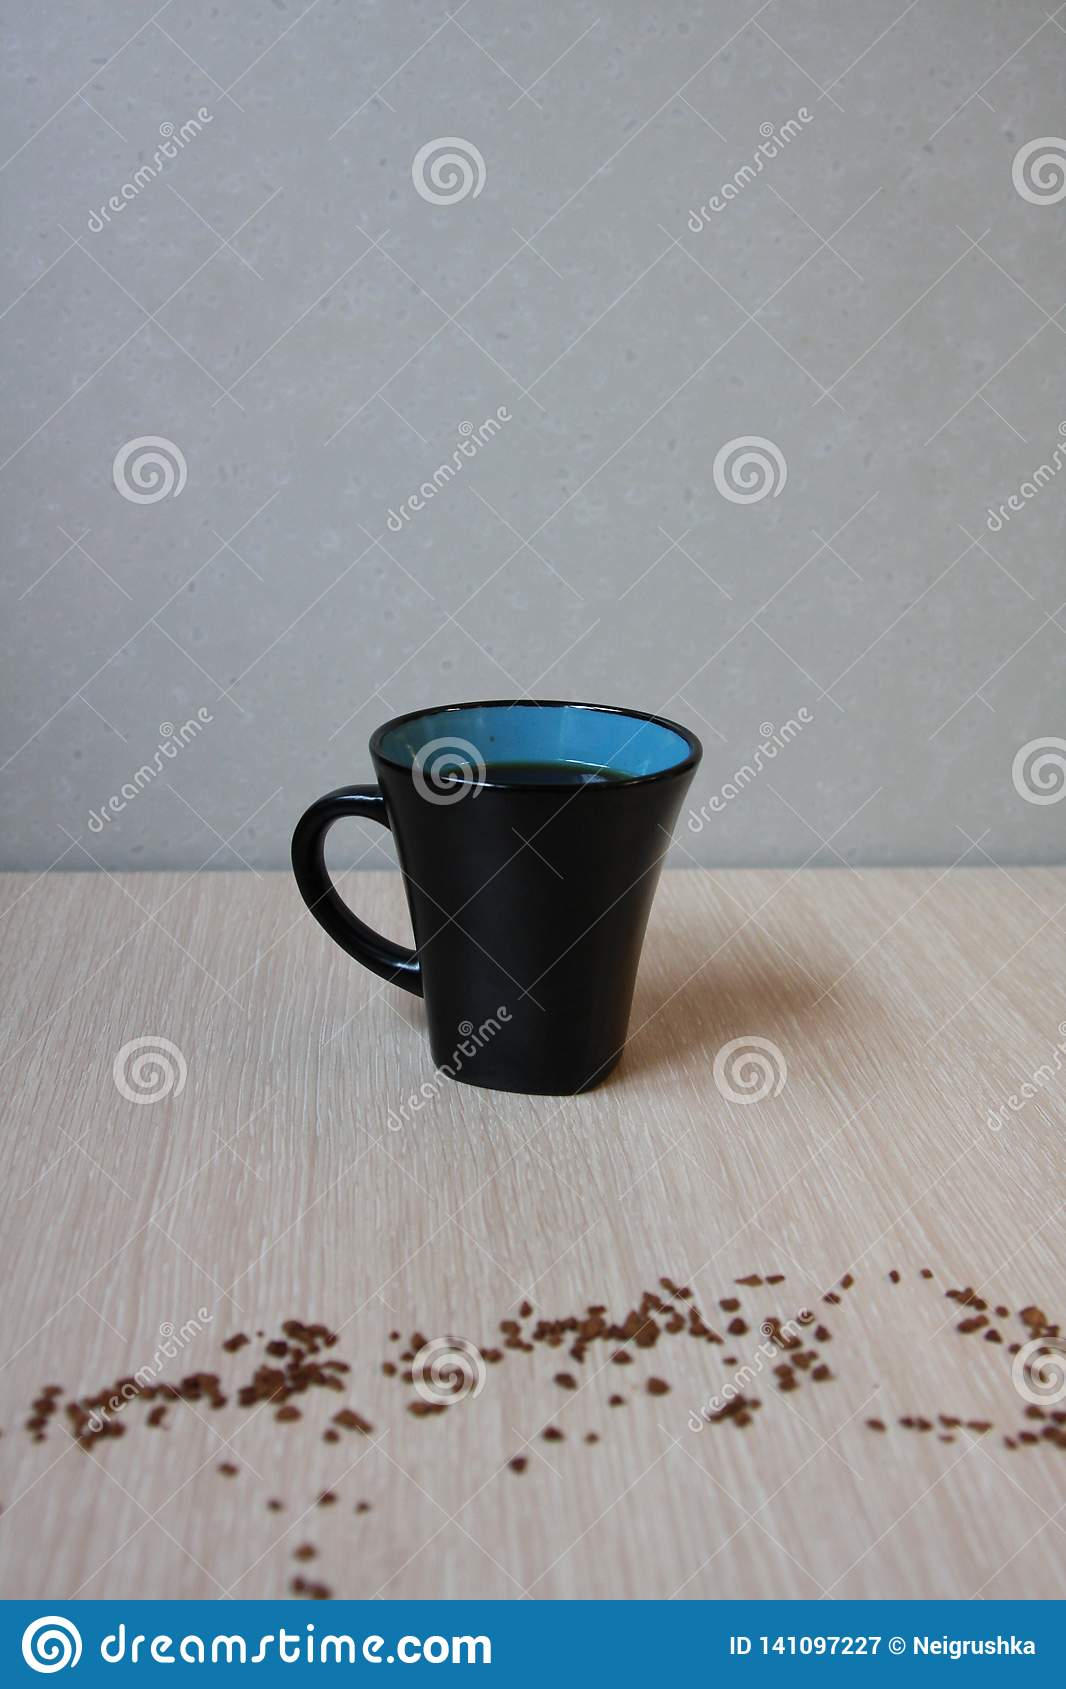 Cup of fresh coffee on light background with grain powder coffee